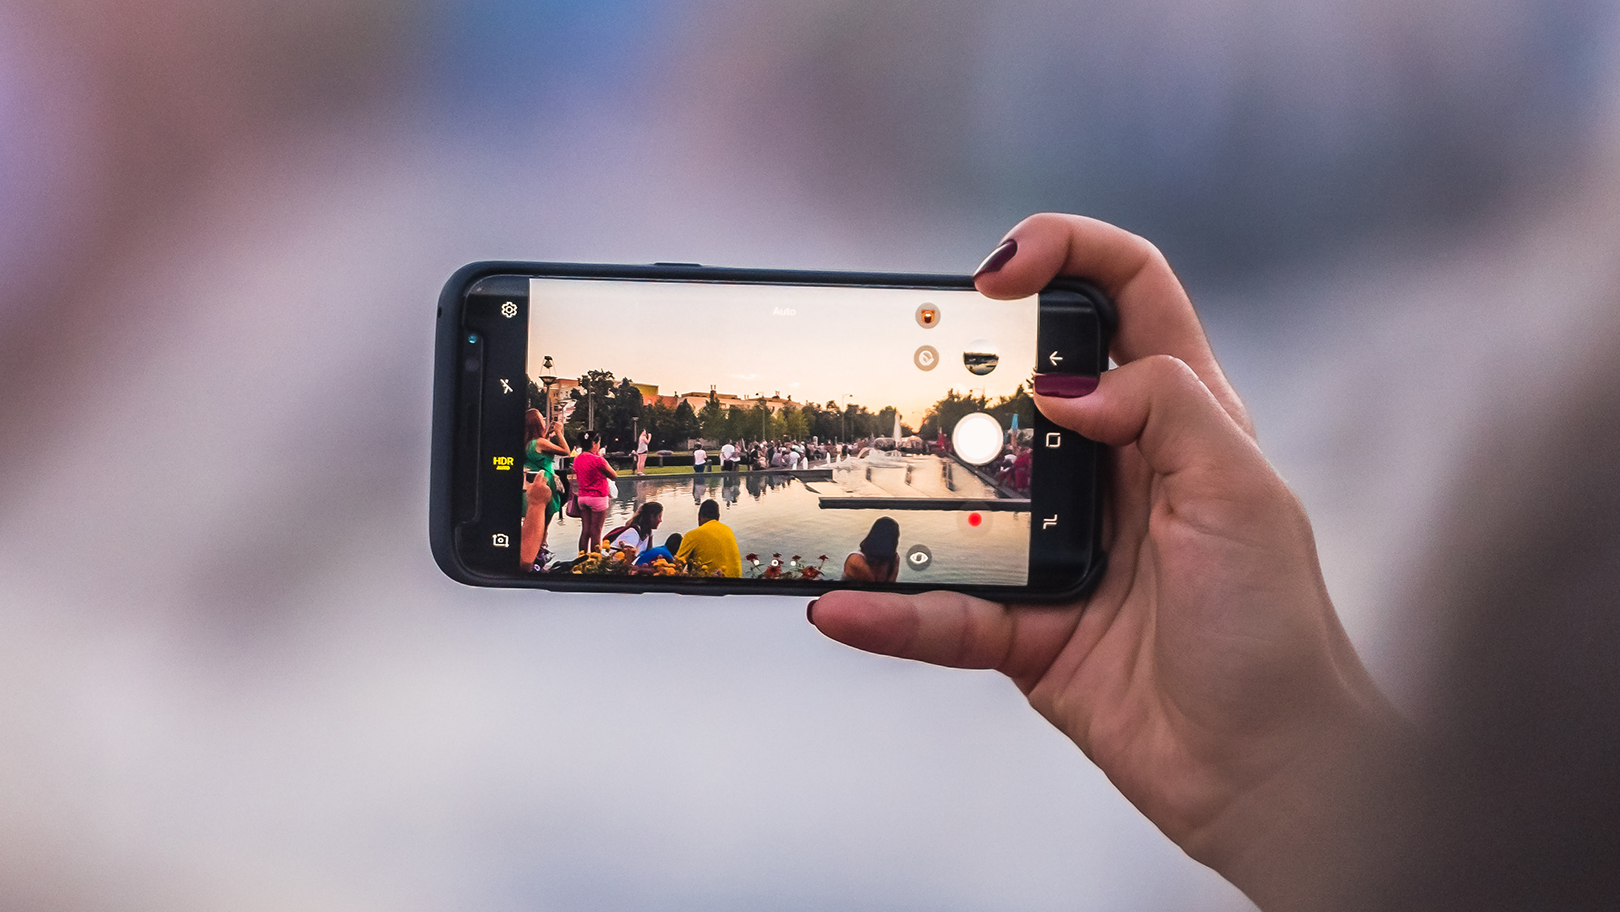 Know Your Smartphone: Things to Look Out For In a Phone Camera